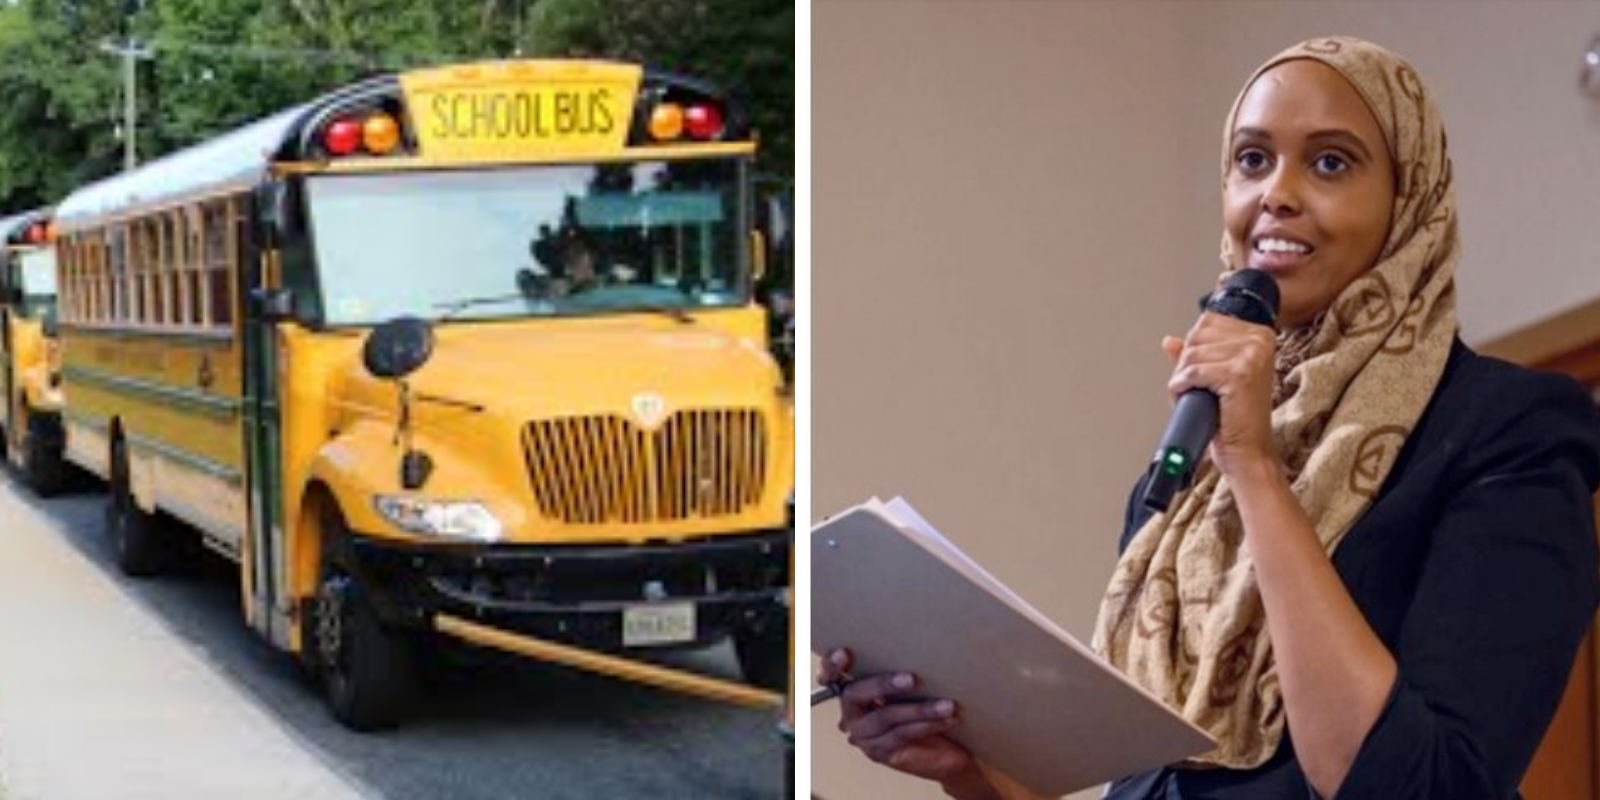 REVEALED: Progressive Wash state politician threatened to blow up school bus, called children 'cowards' as they fled